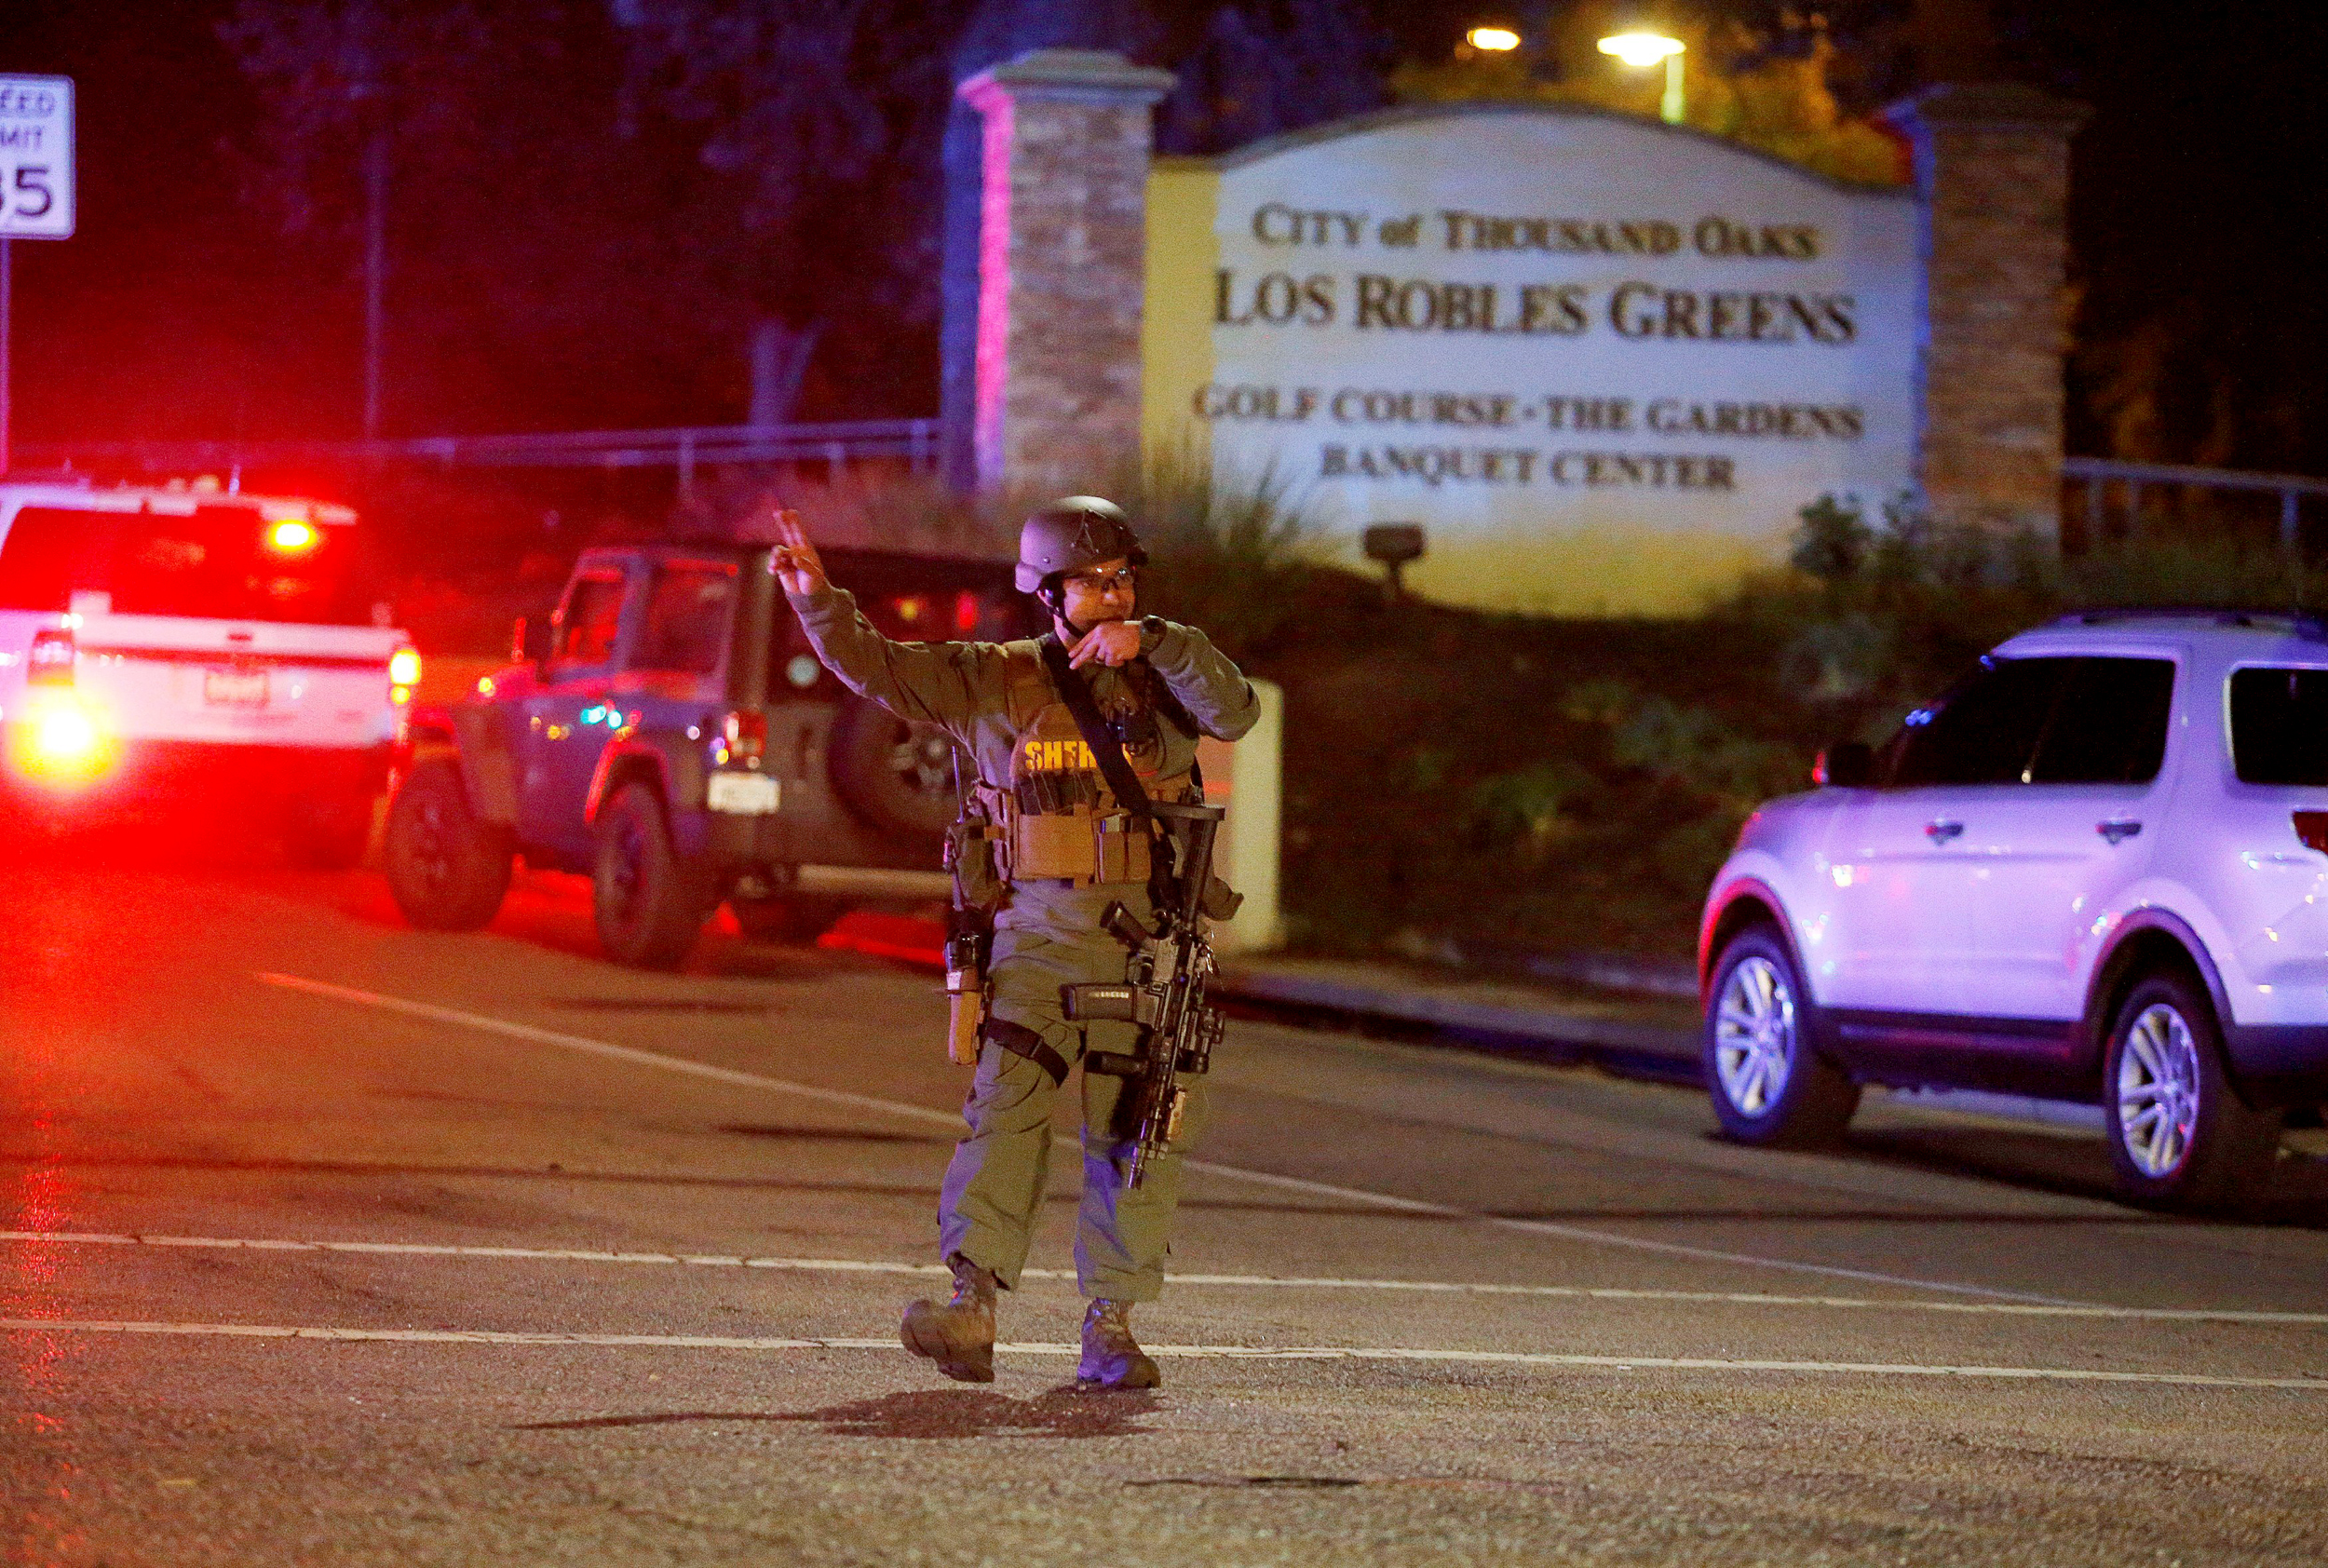 No-time-for-backup:-Police-increasingly-told-to-confront-active-shooters